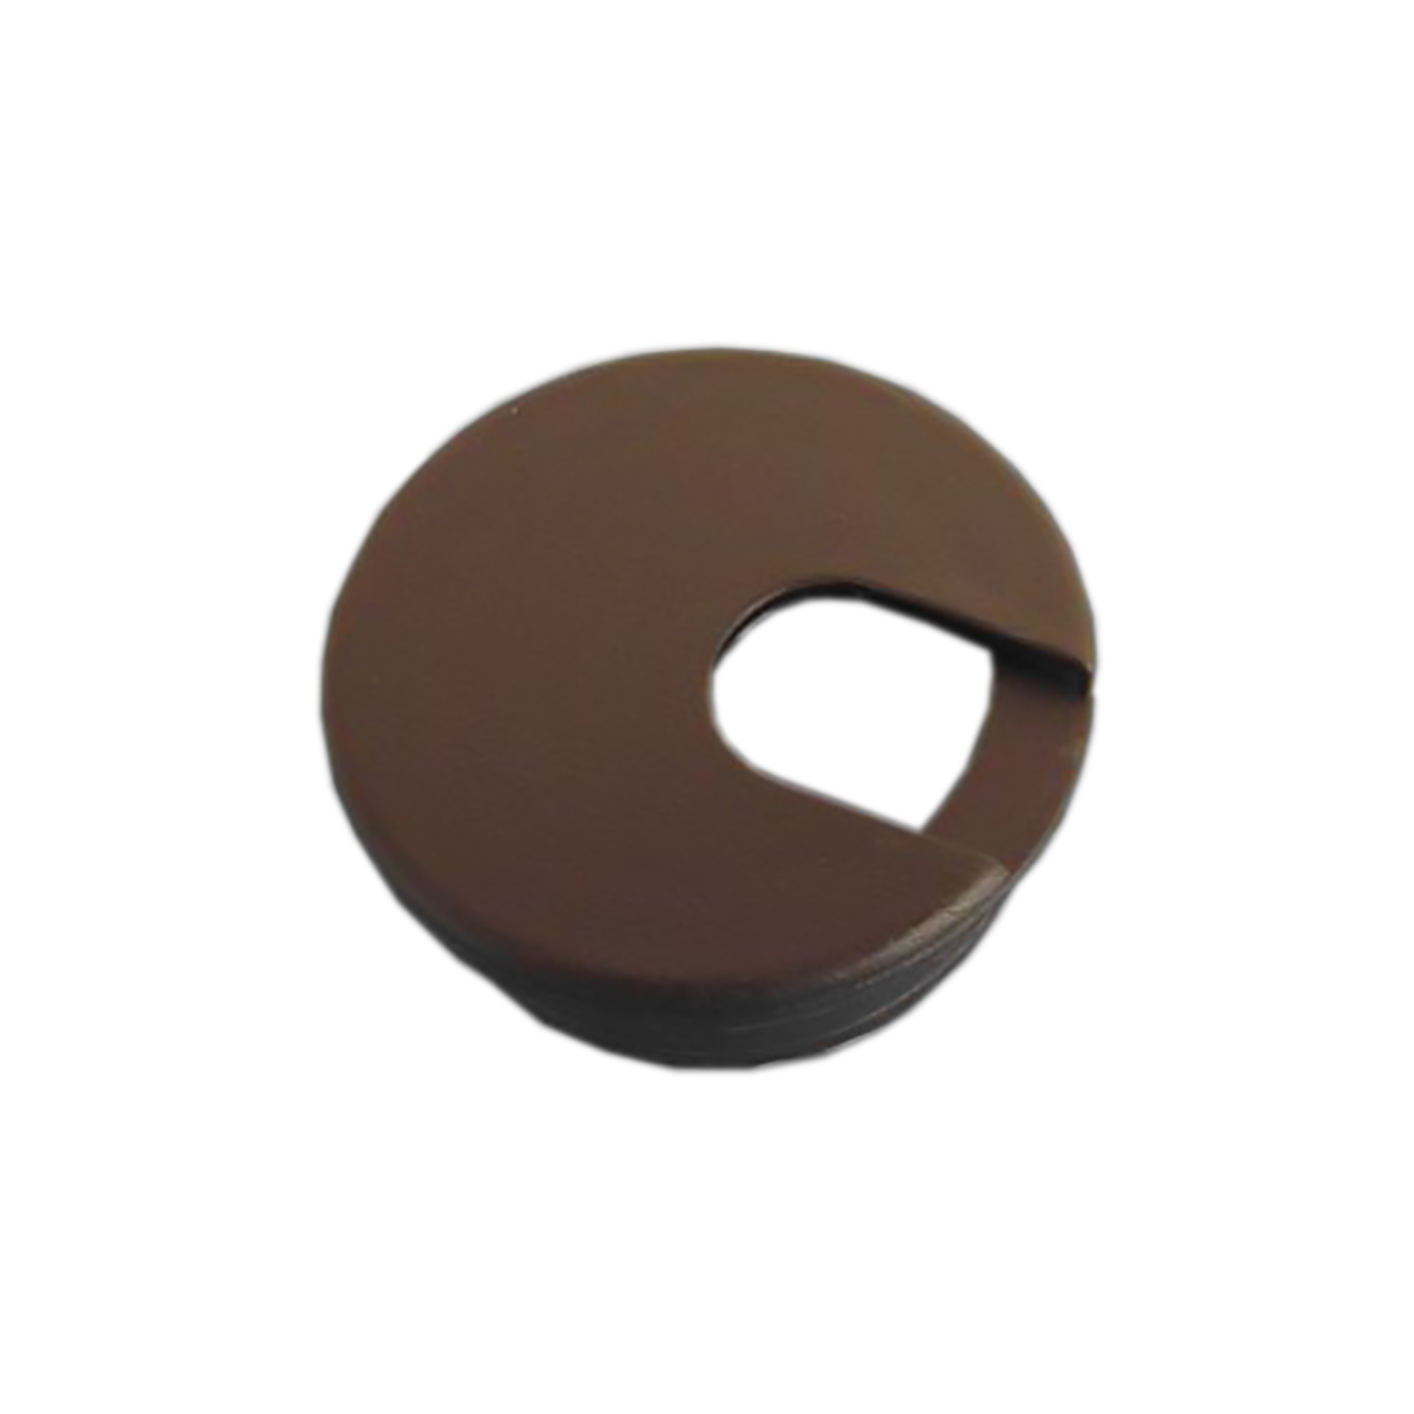 Grommet 1 3 4 brown 03 2206 marathon hardware for 3 furniture grommet